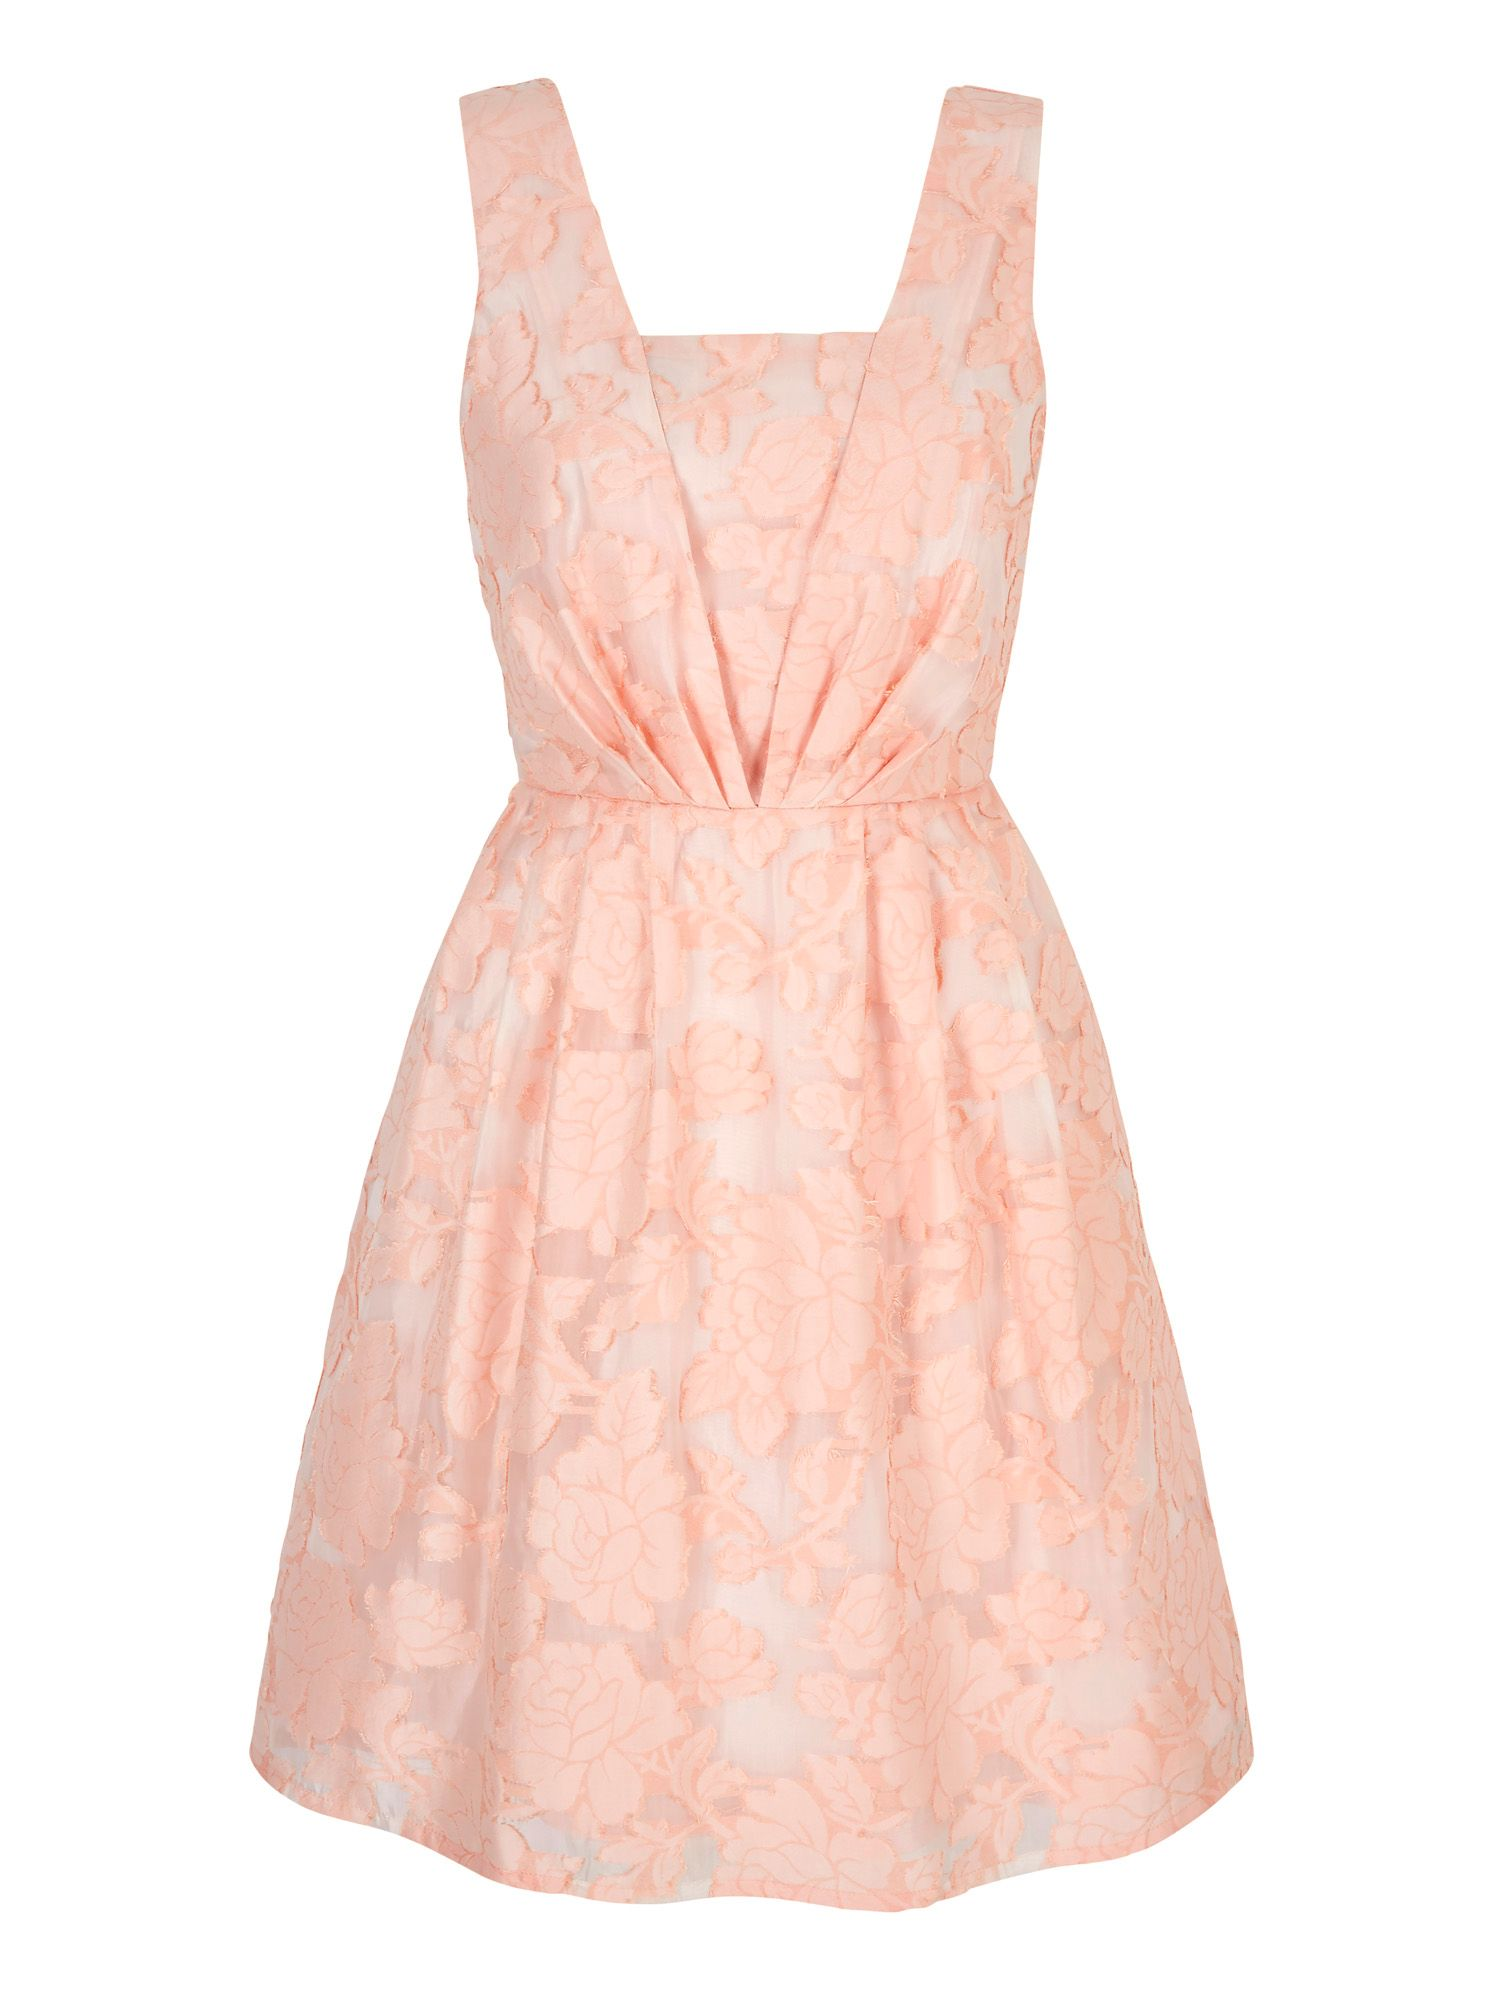 Yumi Floral Jacquard Party Dress, Coral